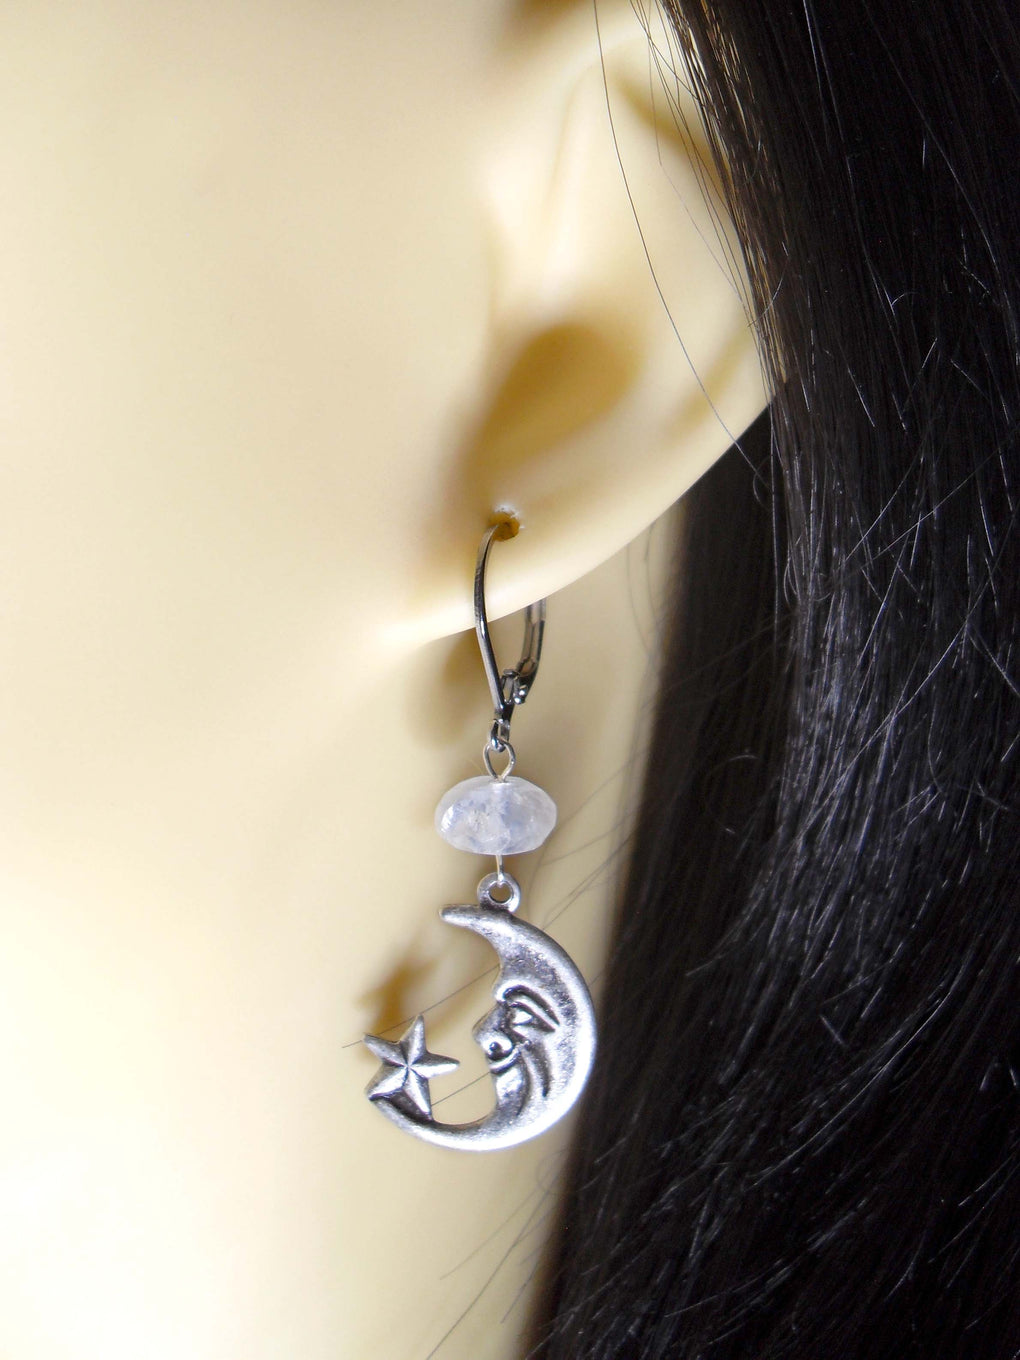 MOONSTONE CRESCENT MOON EARRINGS